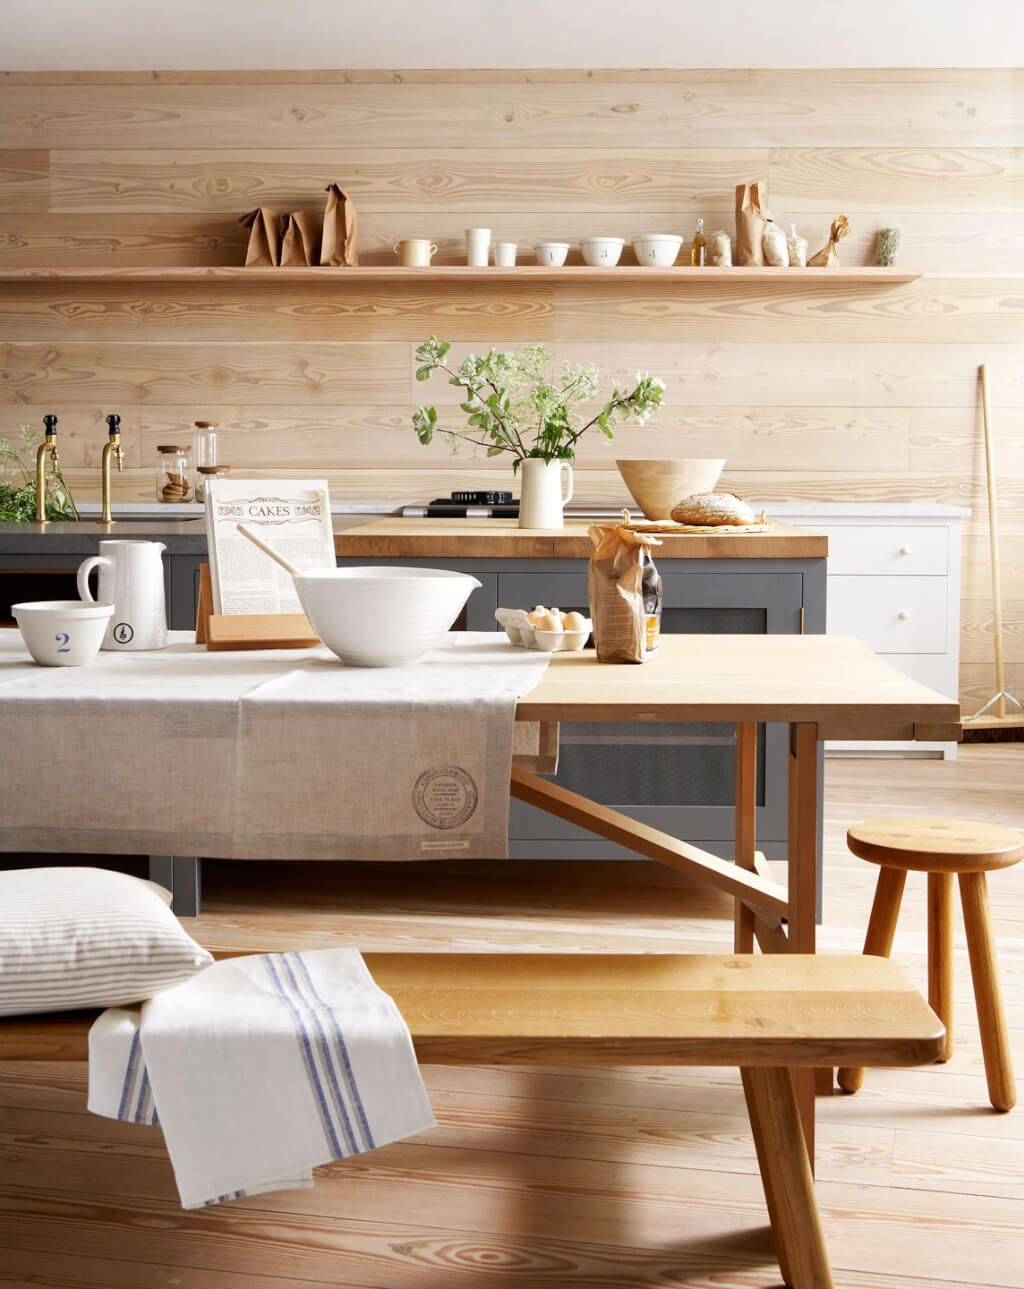 Modern Design Trends Inspired By Dwell On Design The Art Of